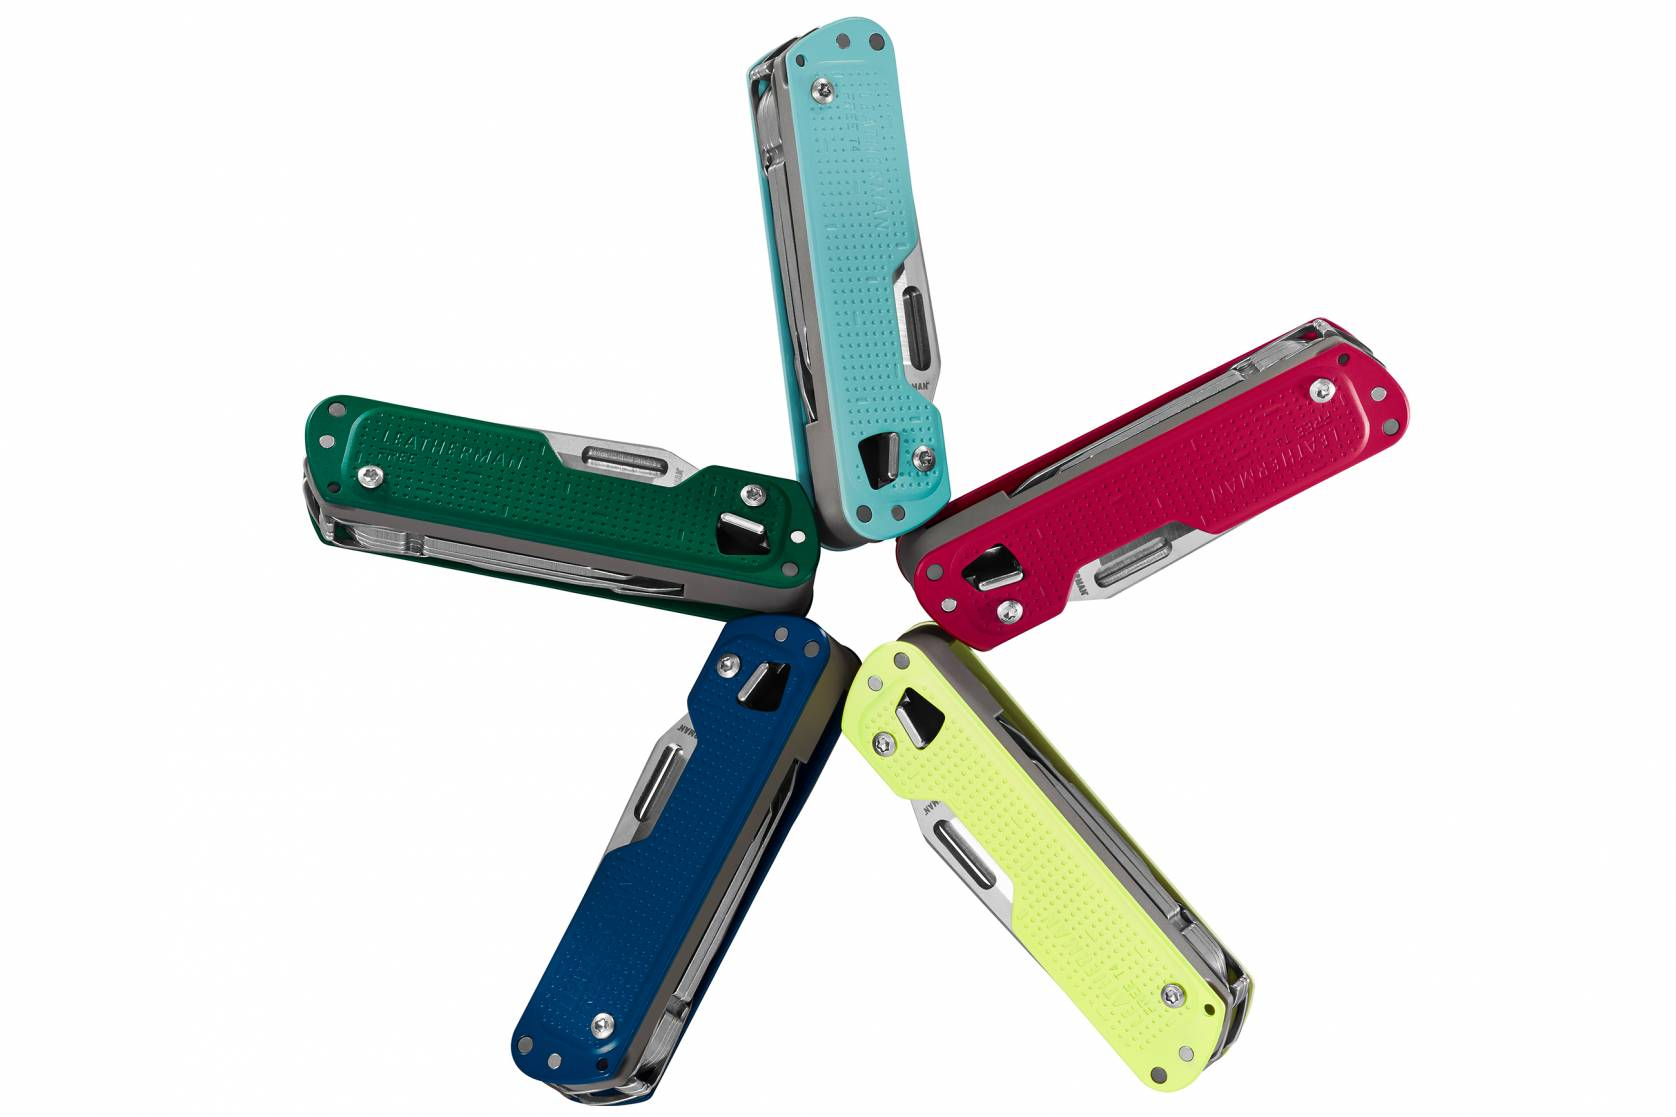 Leatherman Free T4 new colors